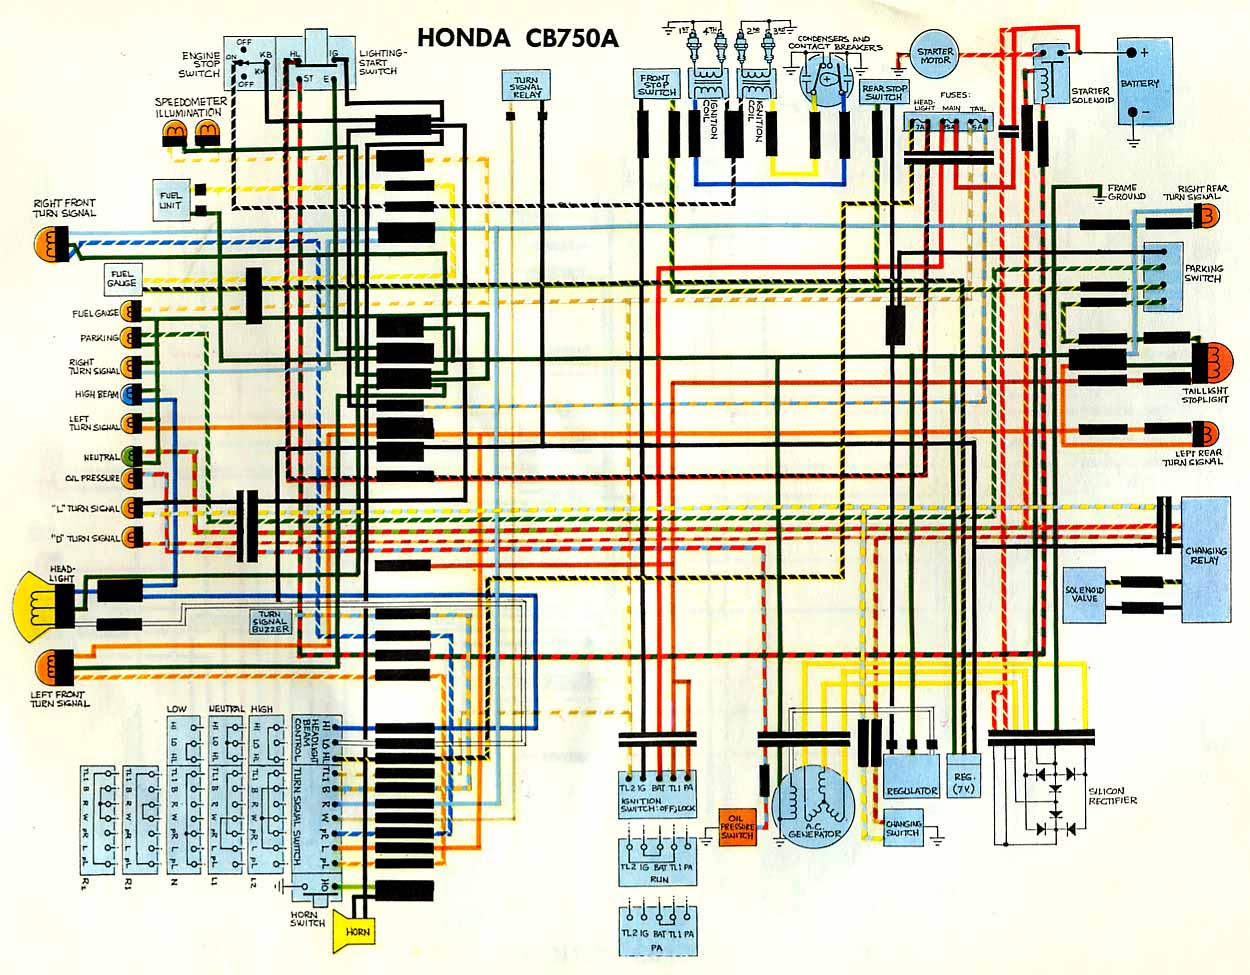 wiring diagram for 1983 nighthawk 650 wiring diagram used 1984 cb650 simple wiring diagram wiring diagram [ 1250 x 975 Pixel ]